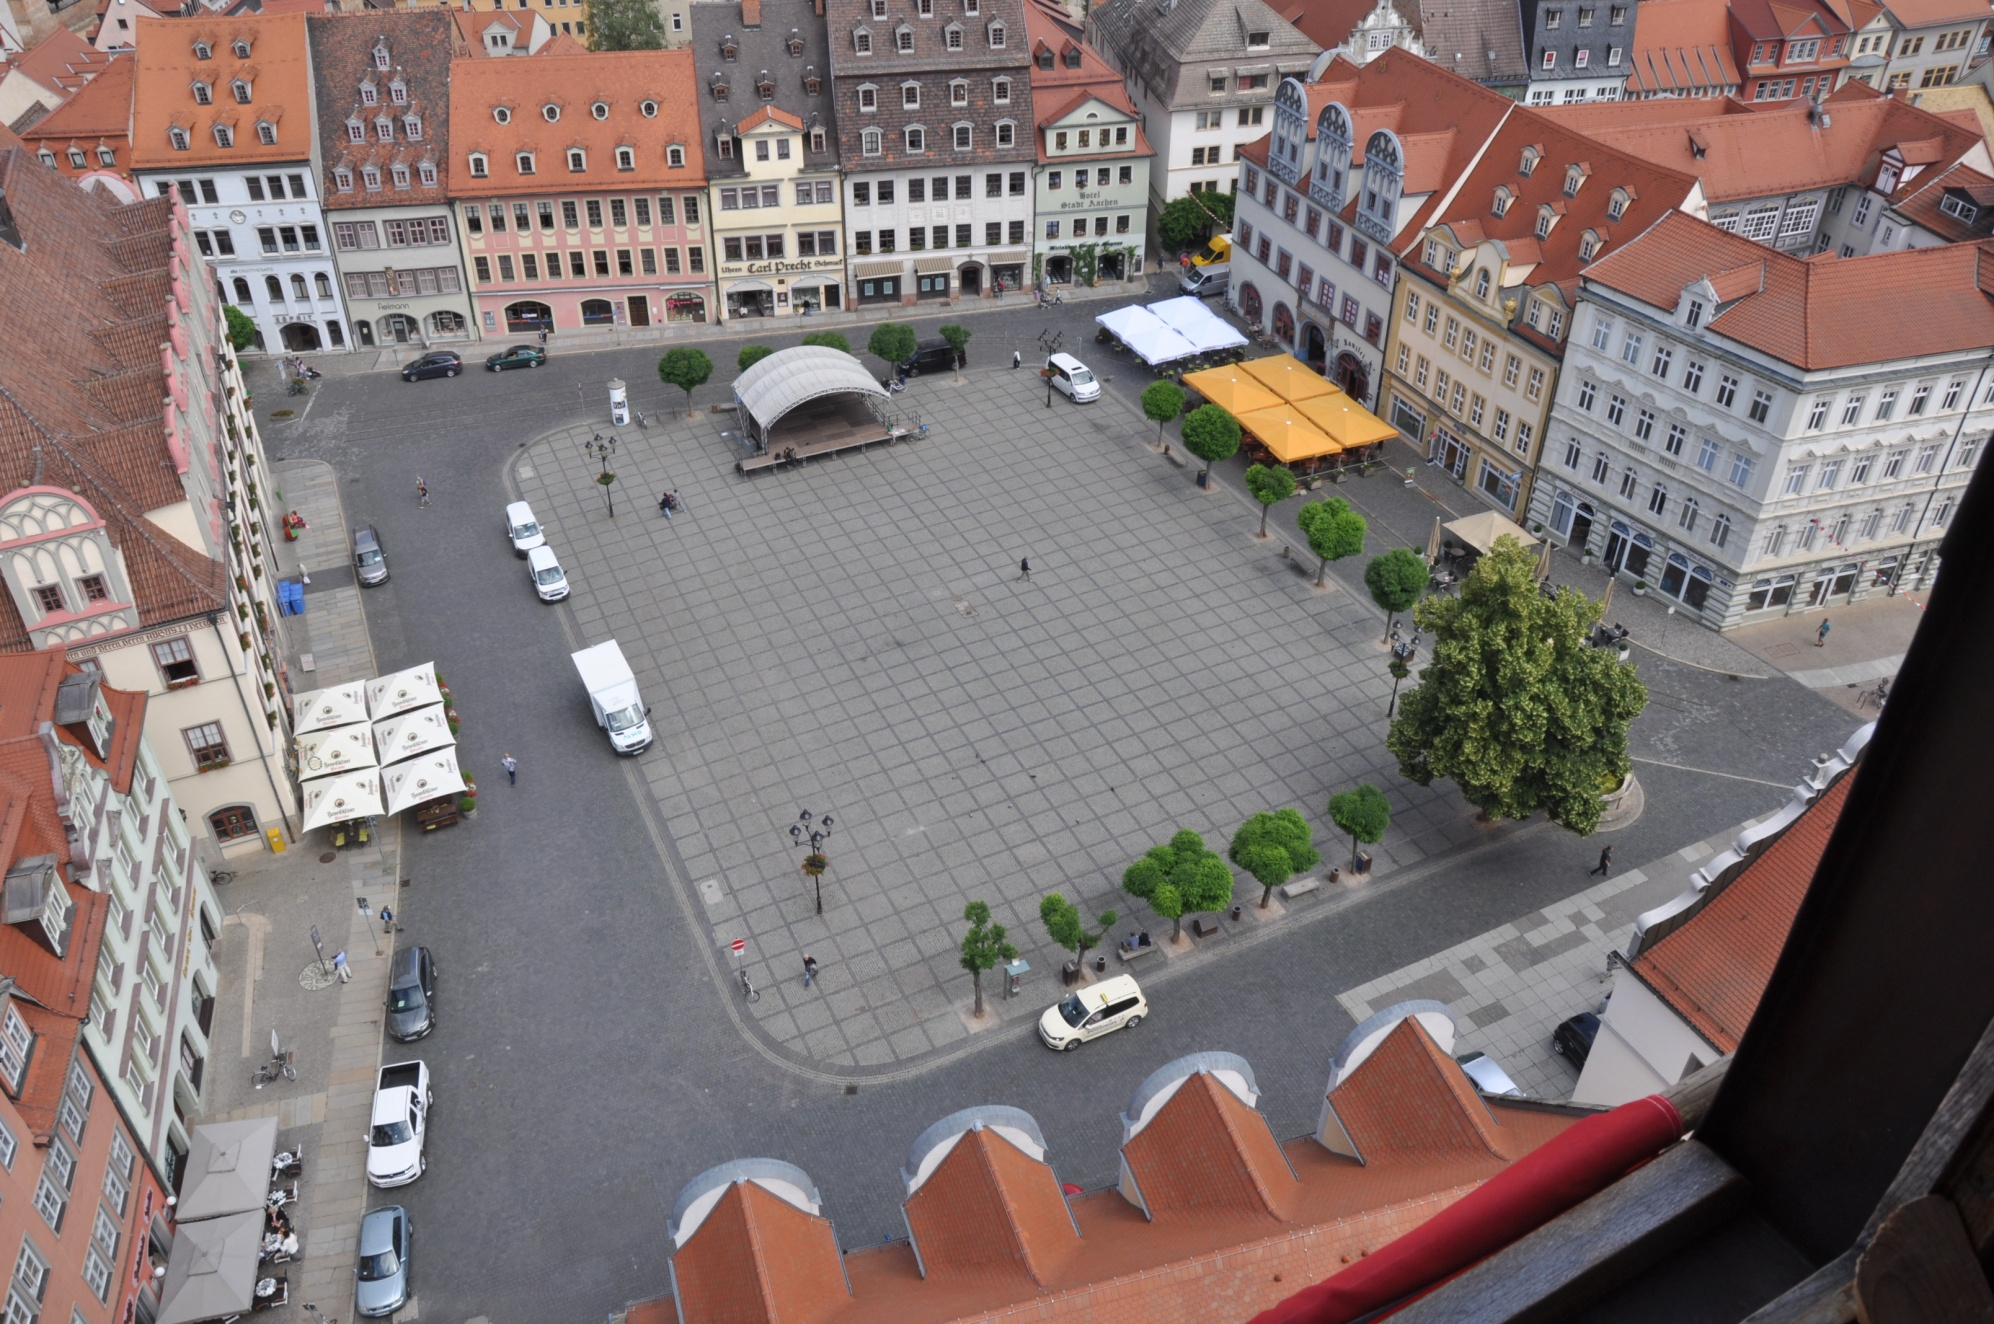 The Naumburg main square as seen from the tower of the St Wenzel church